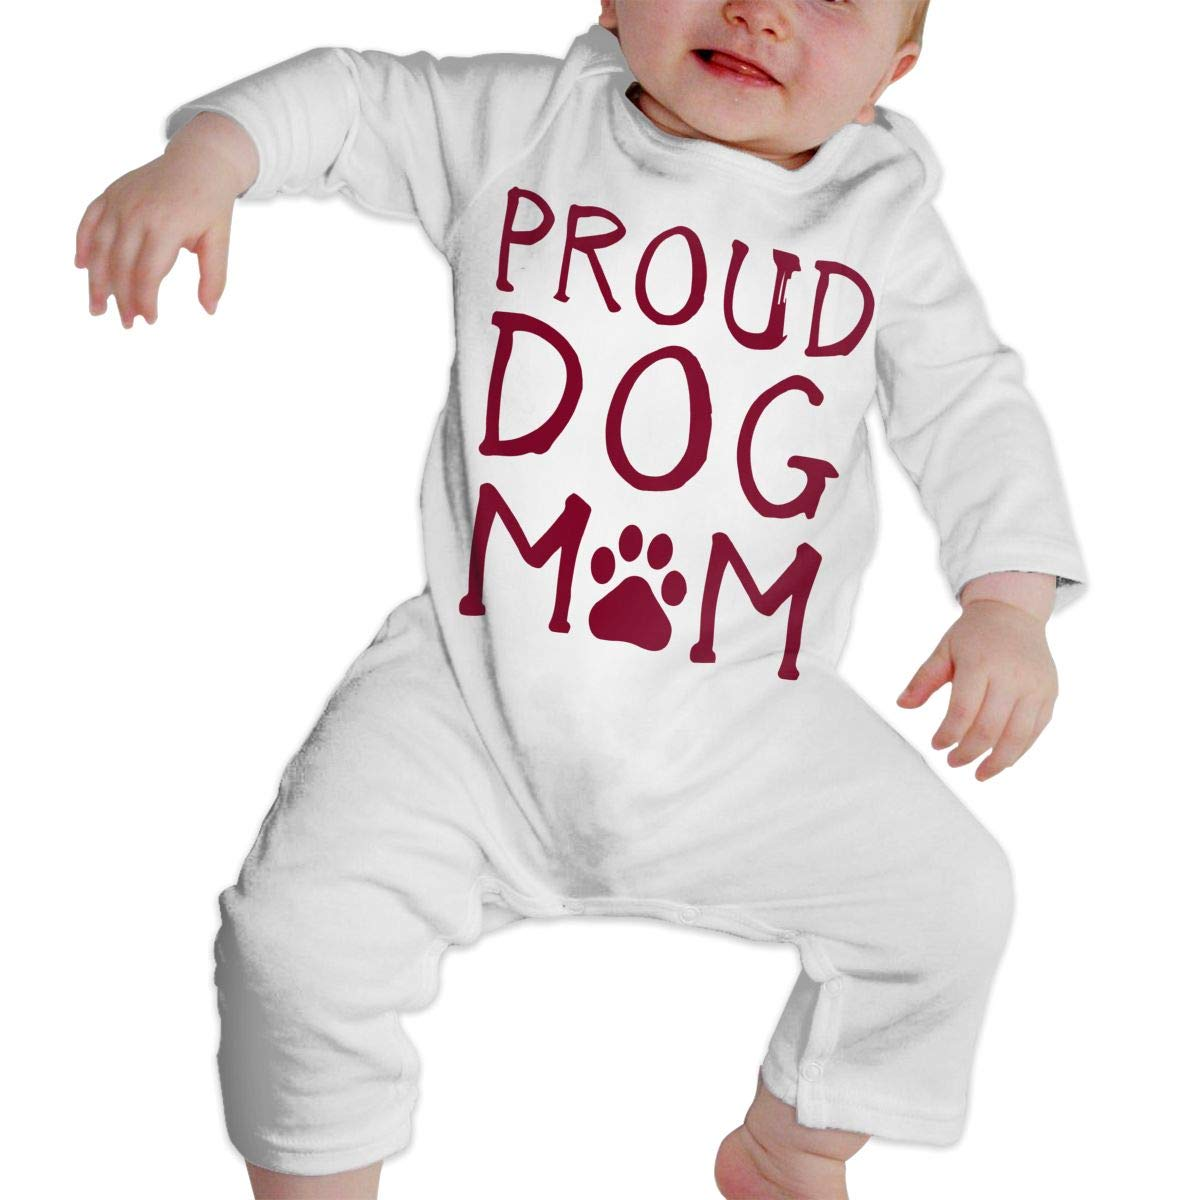 A1BY-5US Newborn Baby Boys Girls Cotton Long Sleeve Proud Dog Mom Climb Romper One-Piece Romper Clothes